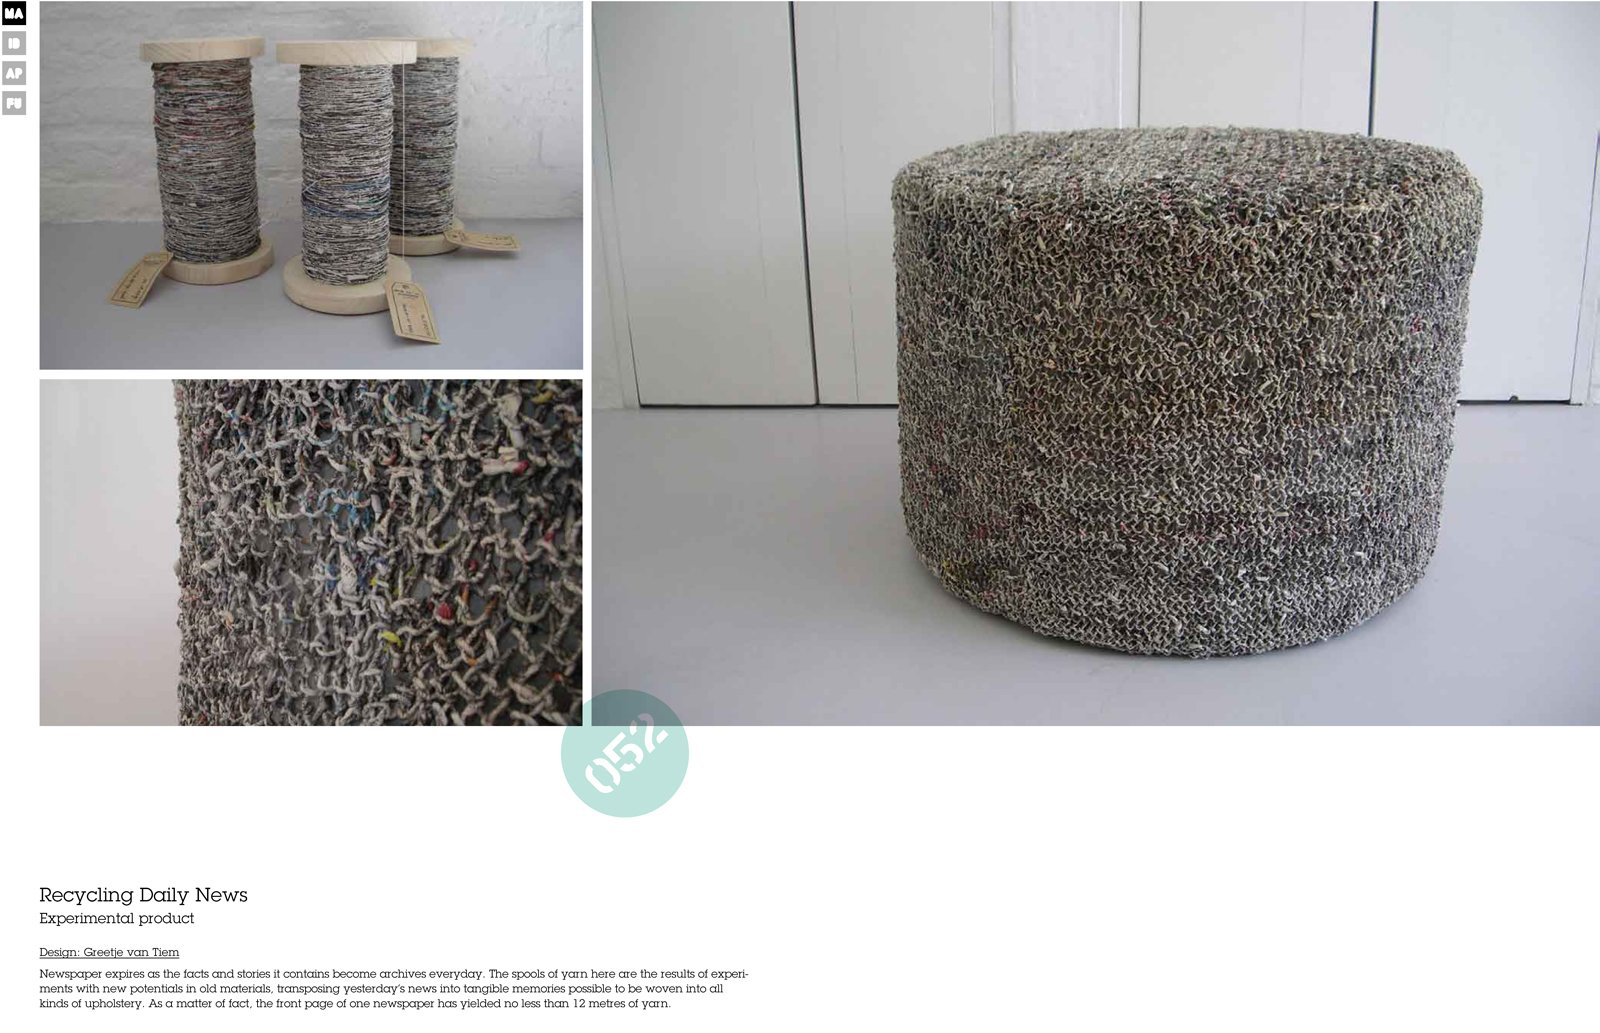 Though we are reading fewer and fewer printed newspapers, pages and pages of paper still gets dropped on doorstops around the globe everyday. Greetje van Tiem's furniture is created with yarn made out of newsprint. The front page of one newspaper can reportedly yield nearly 40 feet of yarn.  Love Earth: Eco Ideas and Designs by Miyoko Ohtake